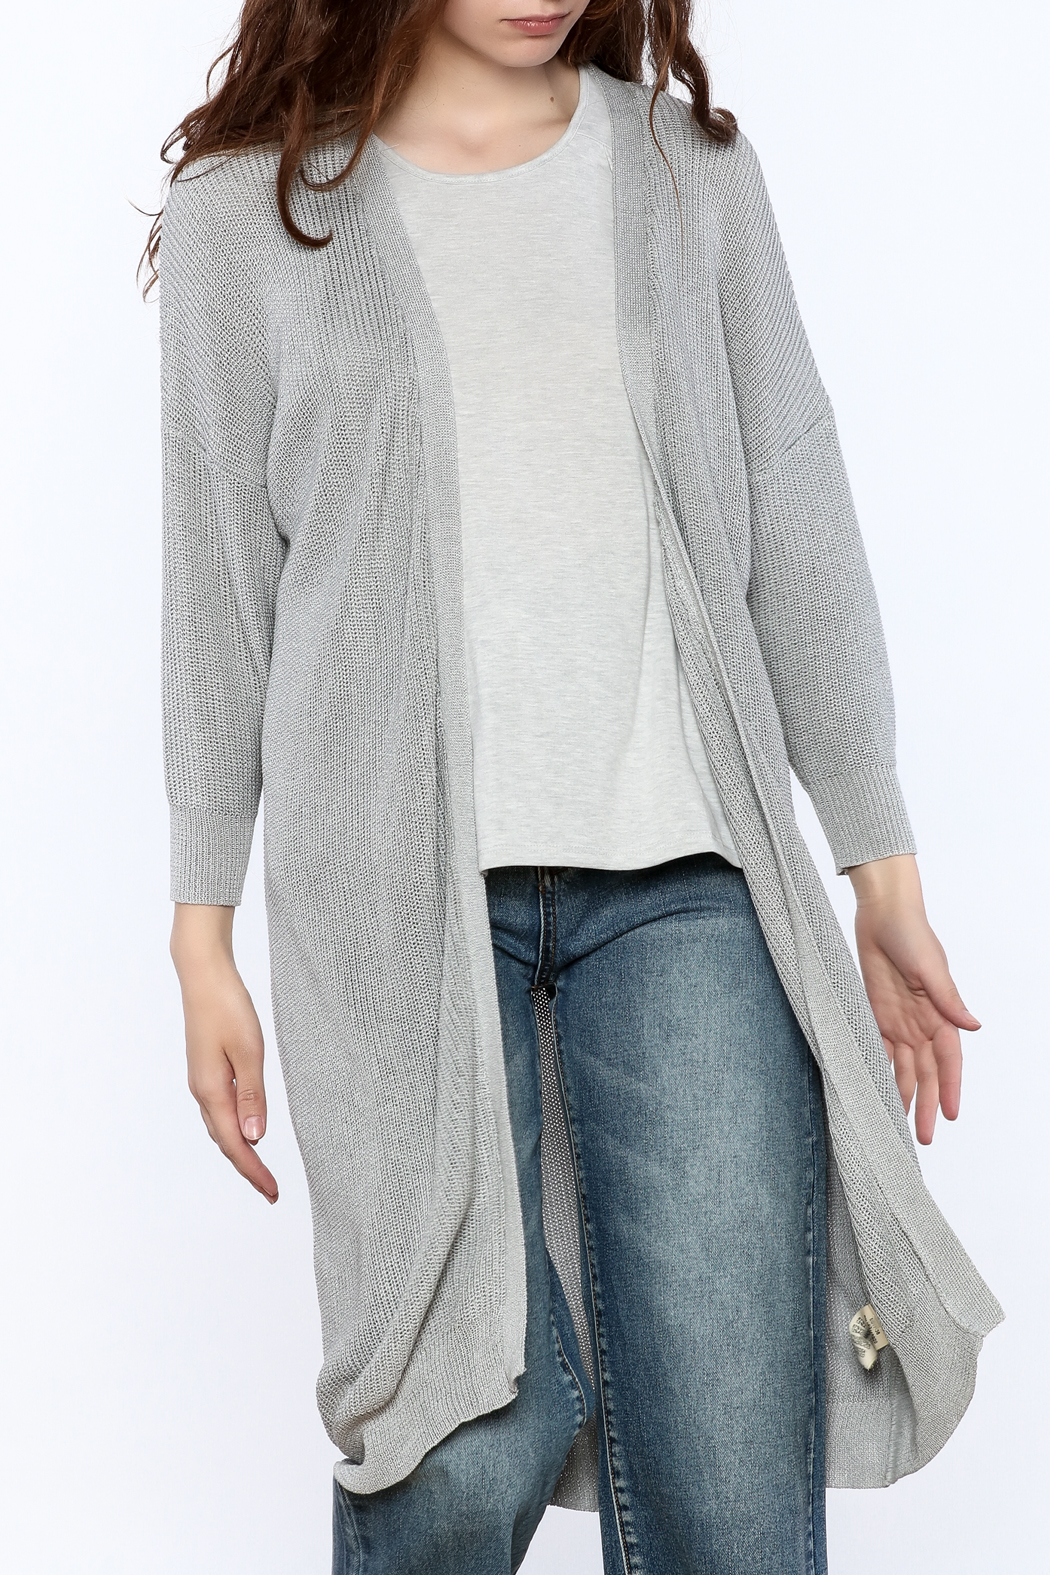 FRNCH Lightweight Grey Cardigan from Hudson Valley by The Editor ...